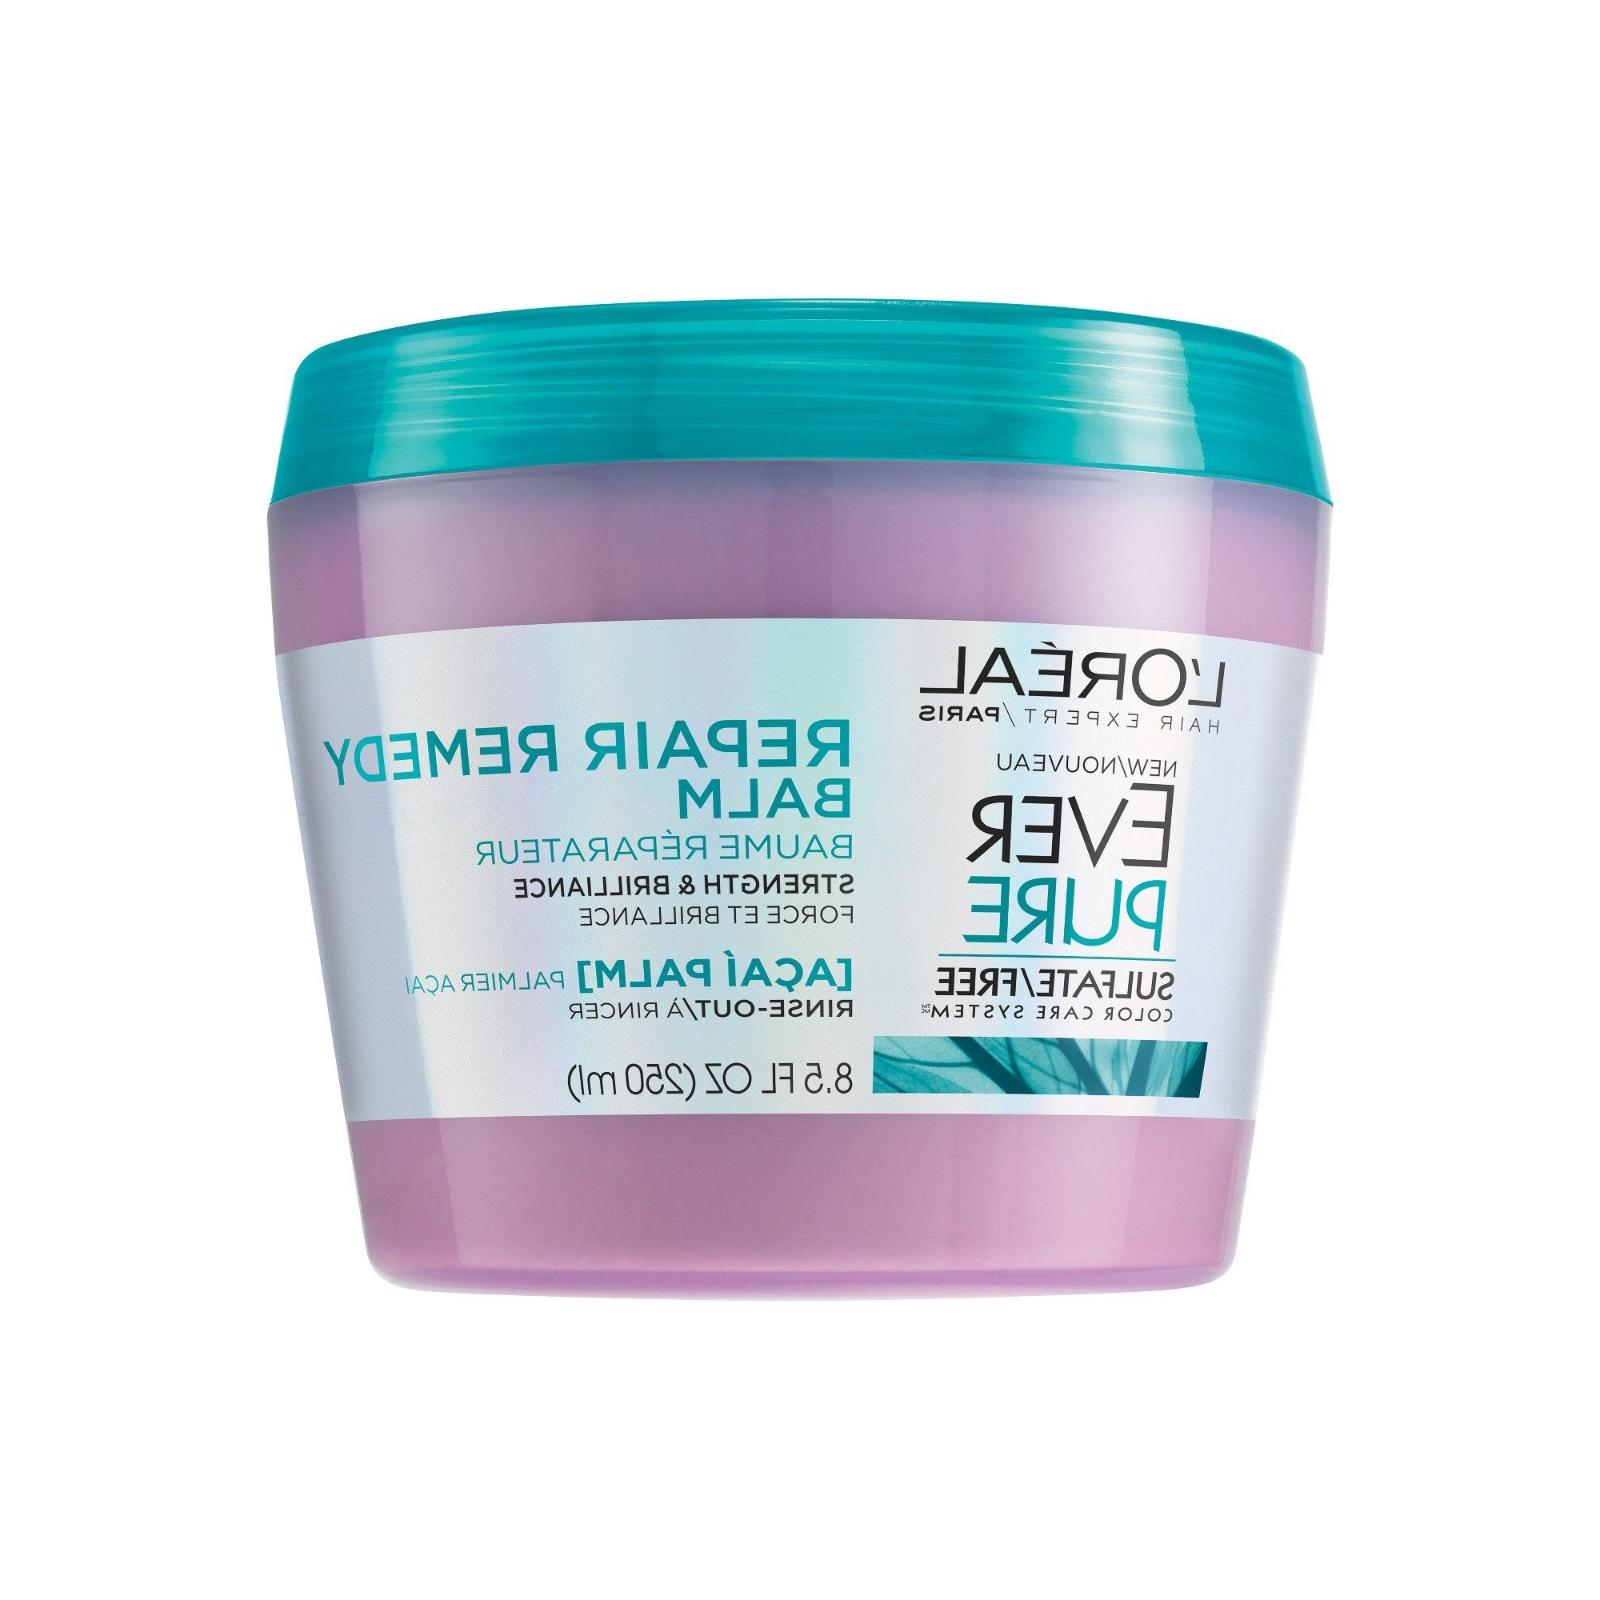 L'OREAL & Styling Products 25% When You 2